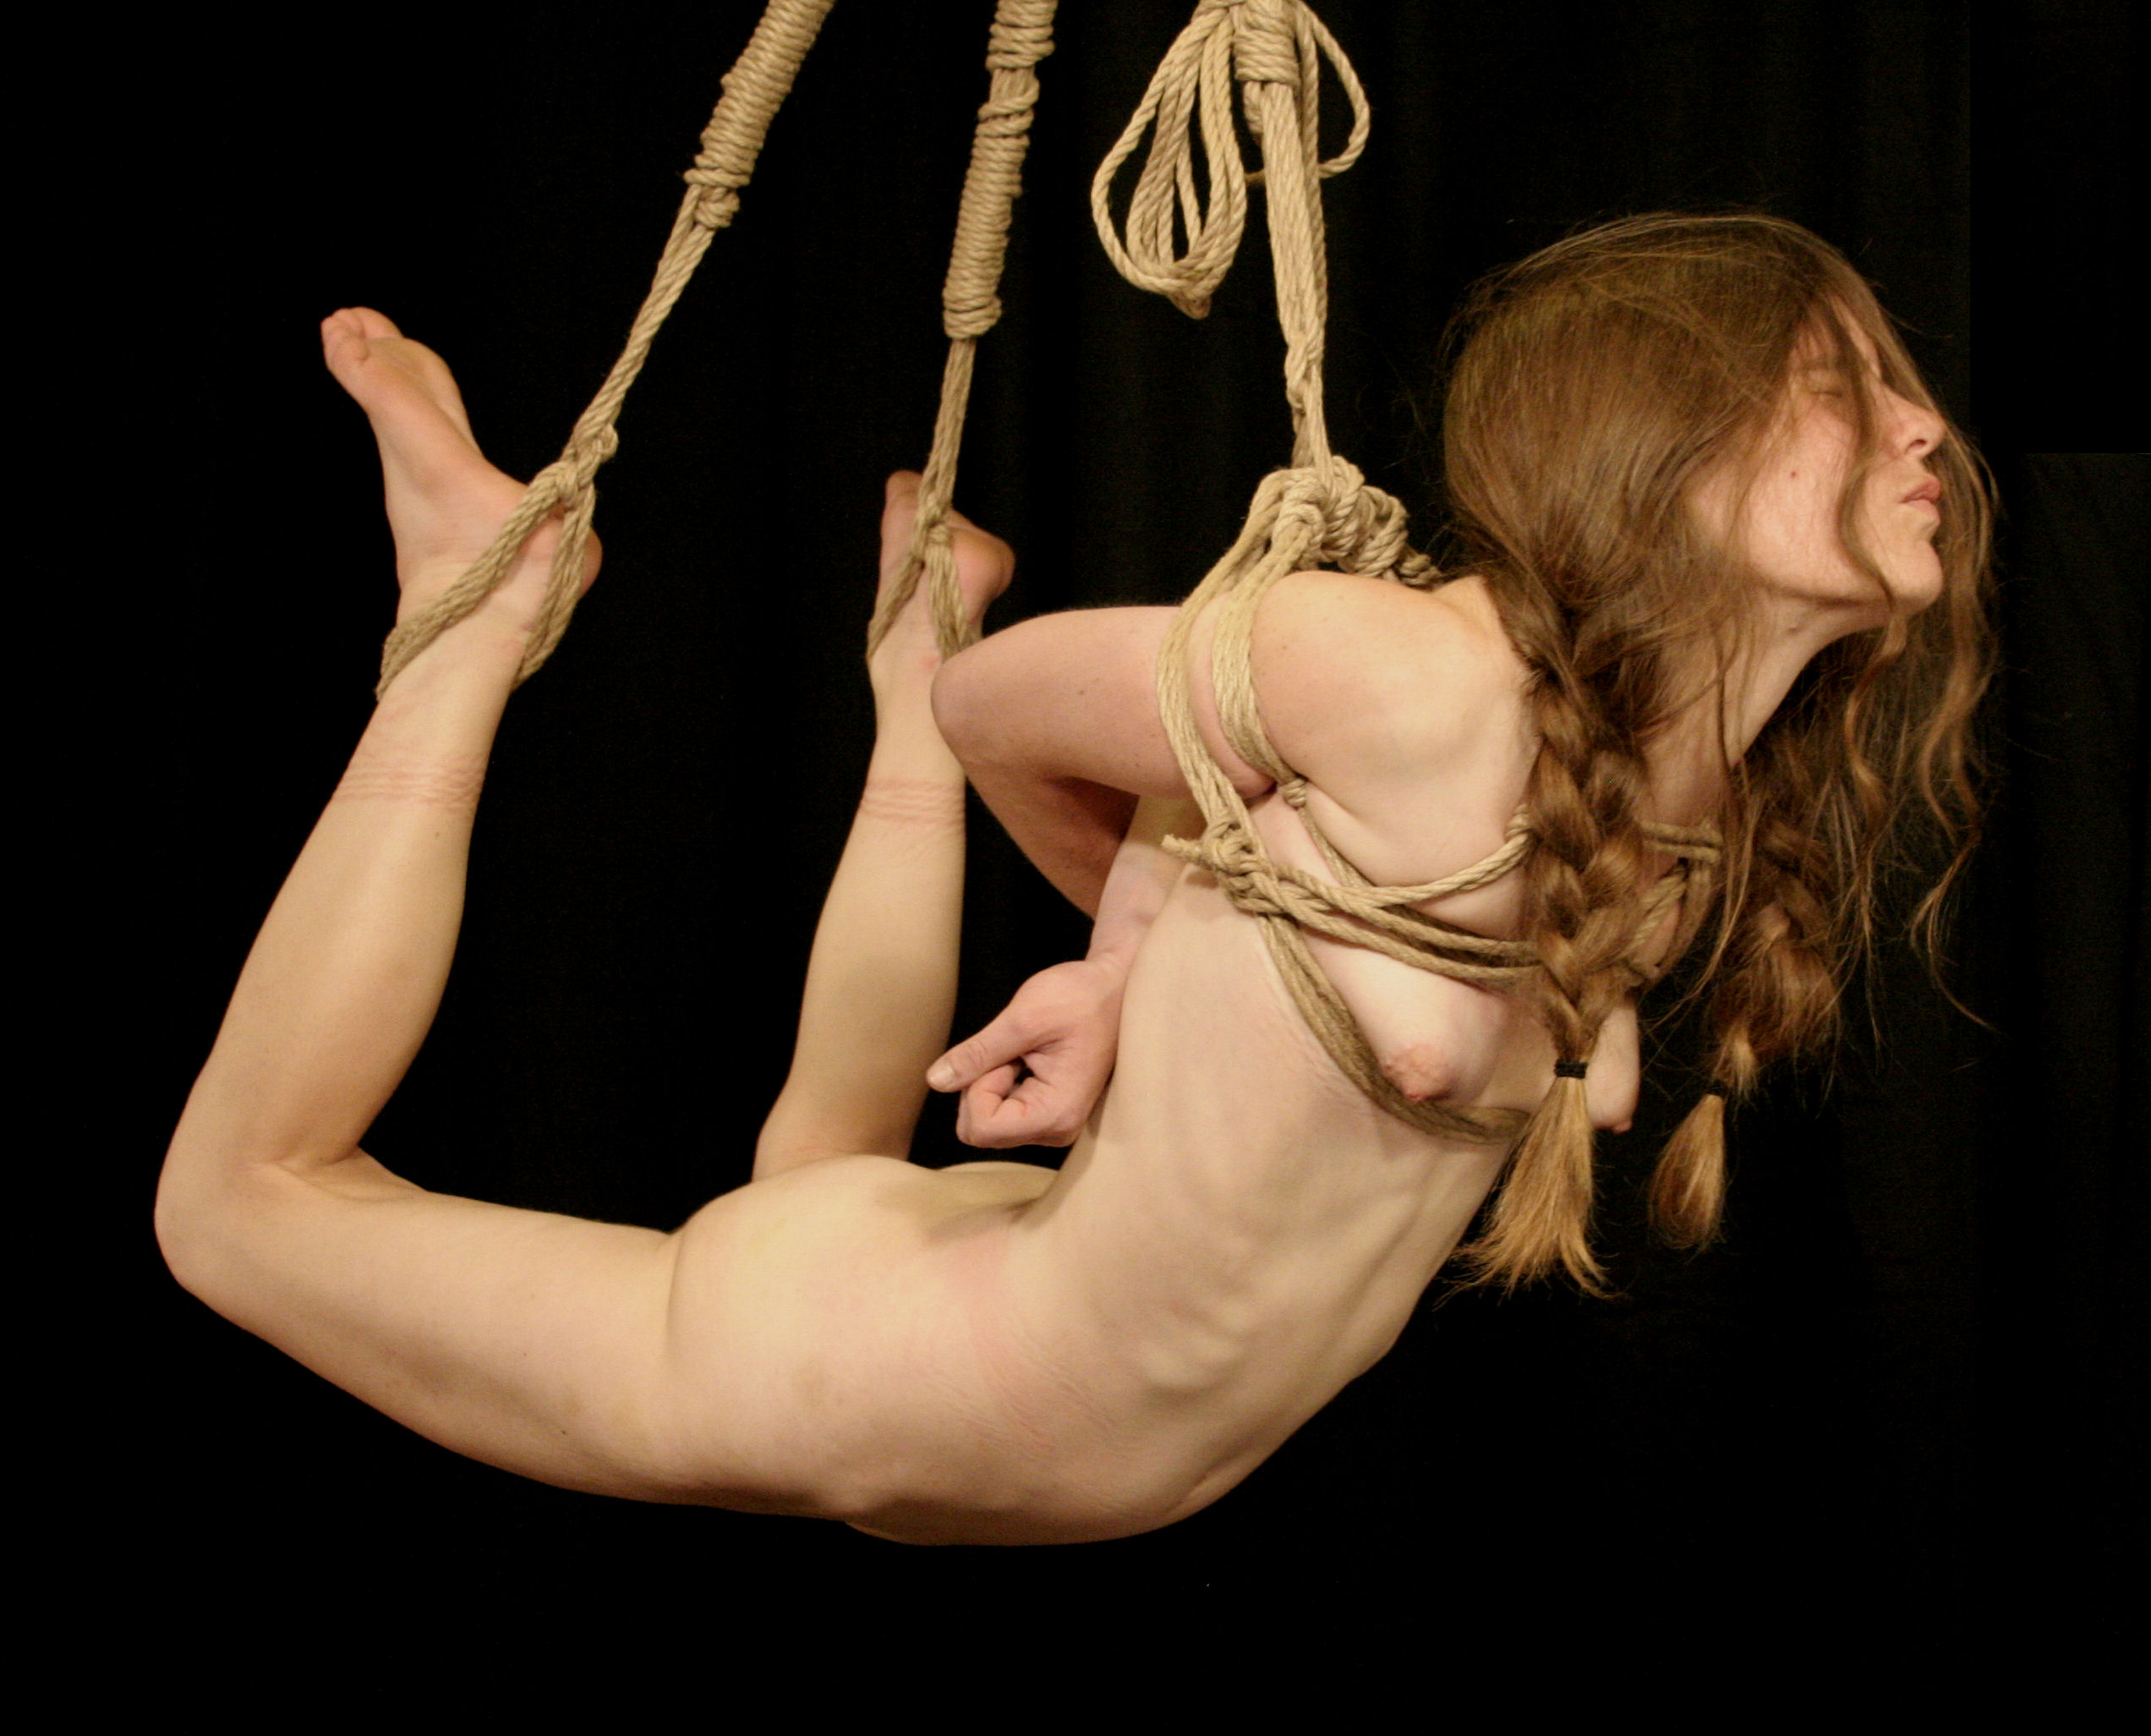 Bondage and suspension women in